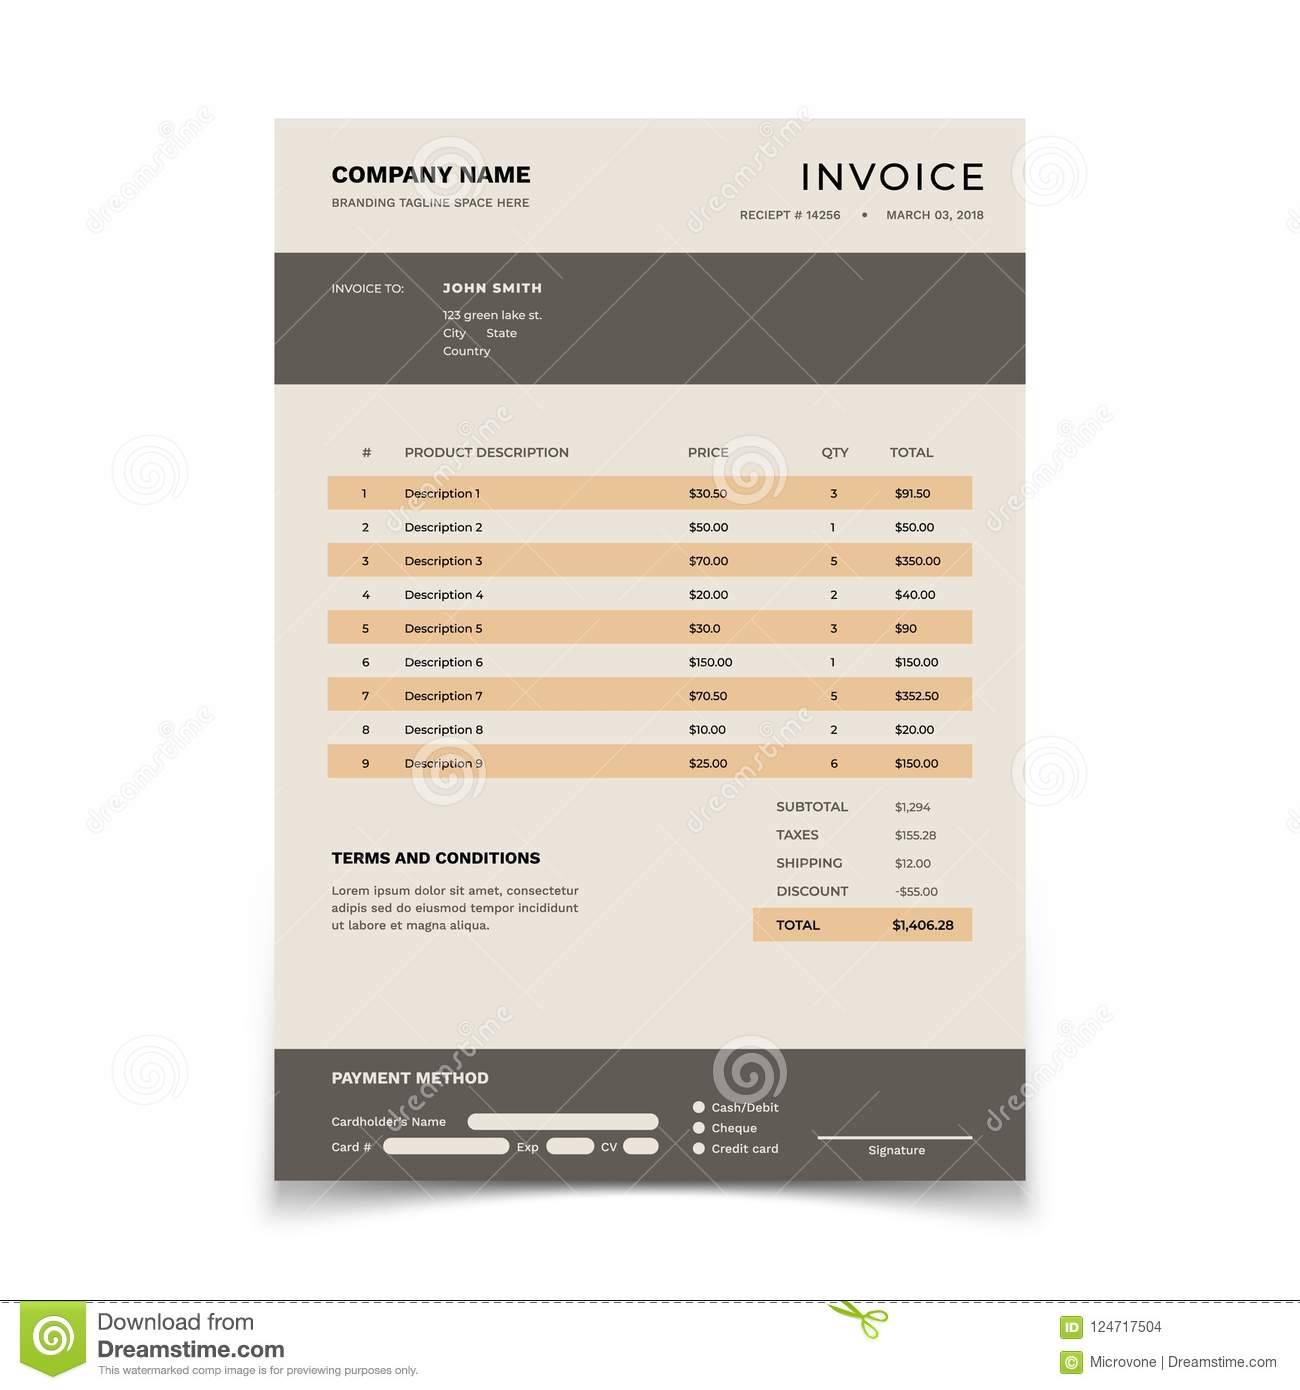 Invoice template bill form with data table and tax bookkeeping download invoice template bill form with data table and tax bookkeeping vector document design maxwellsz